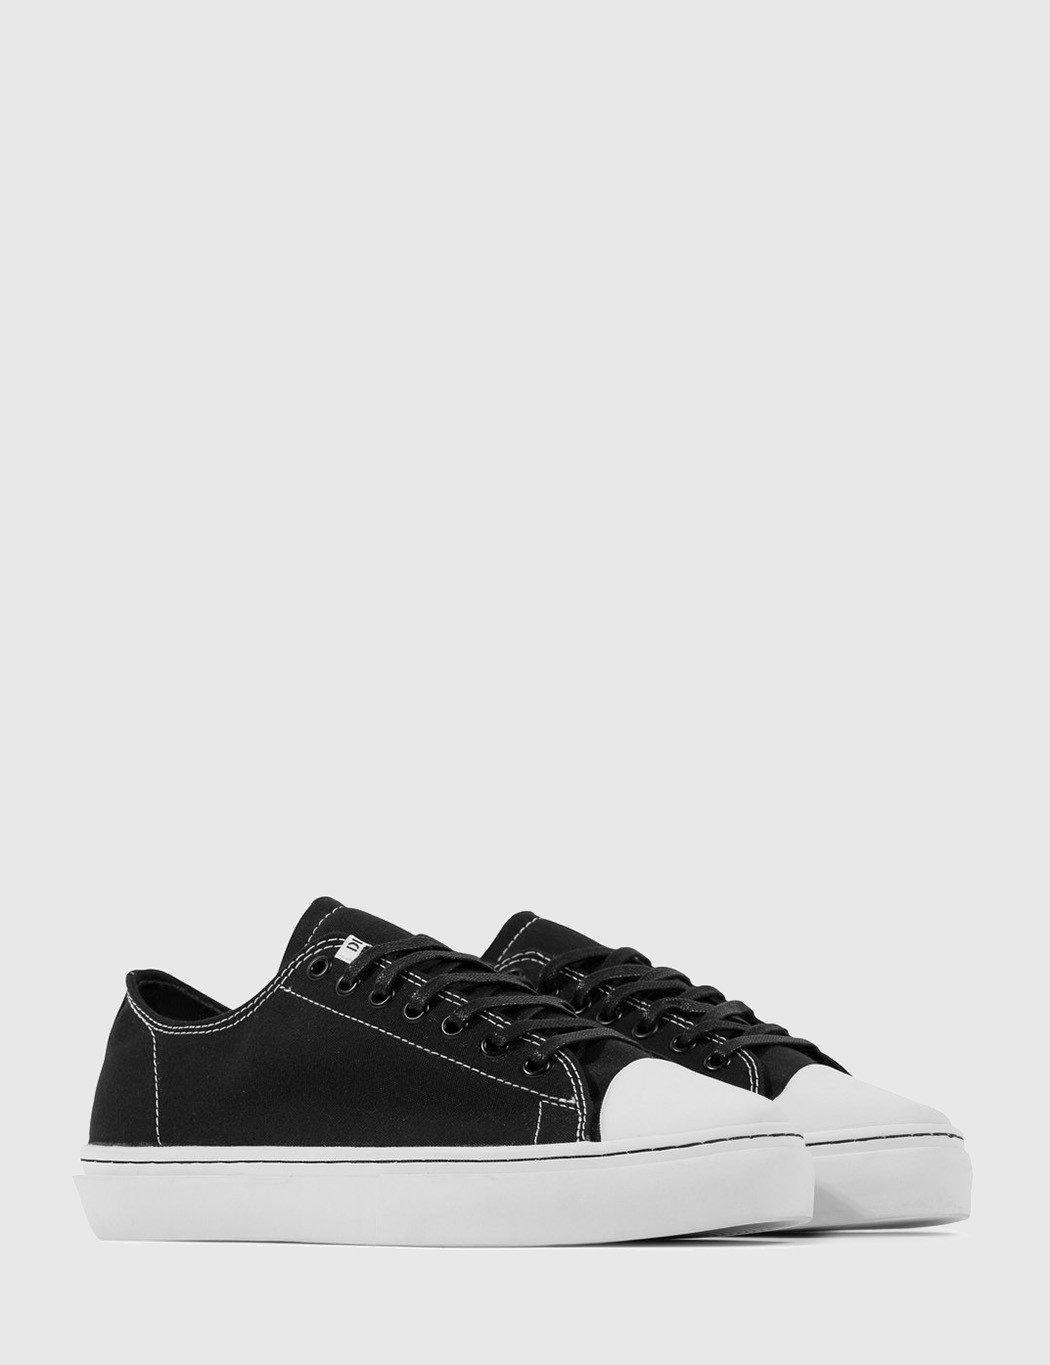 Clear Weather Sierks Low Trainers (canvas) in Black